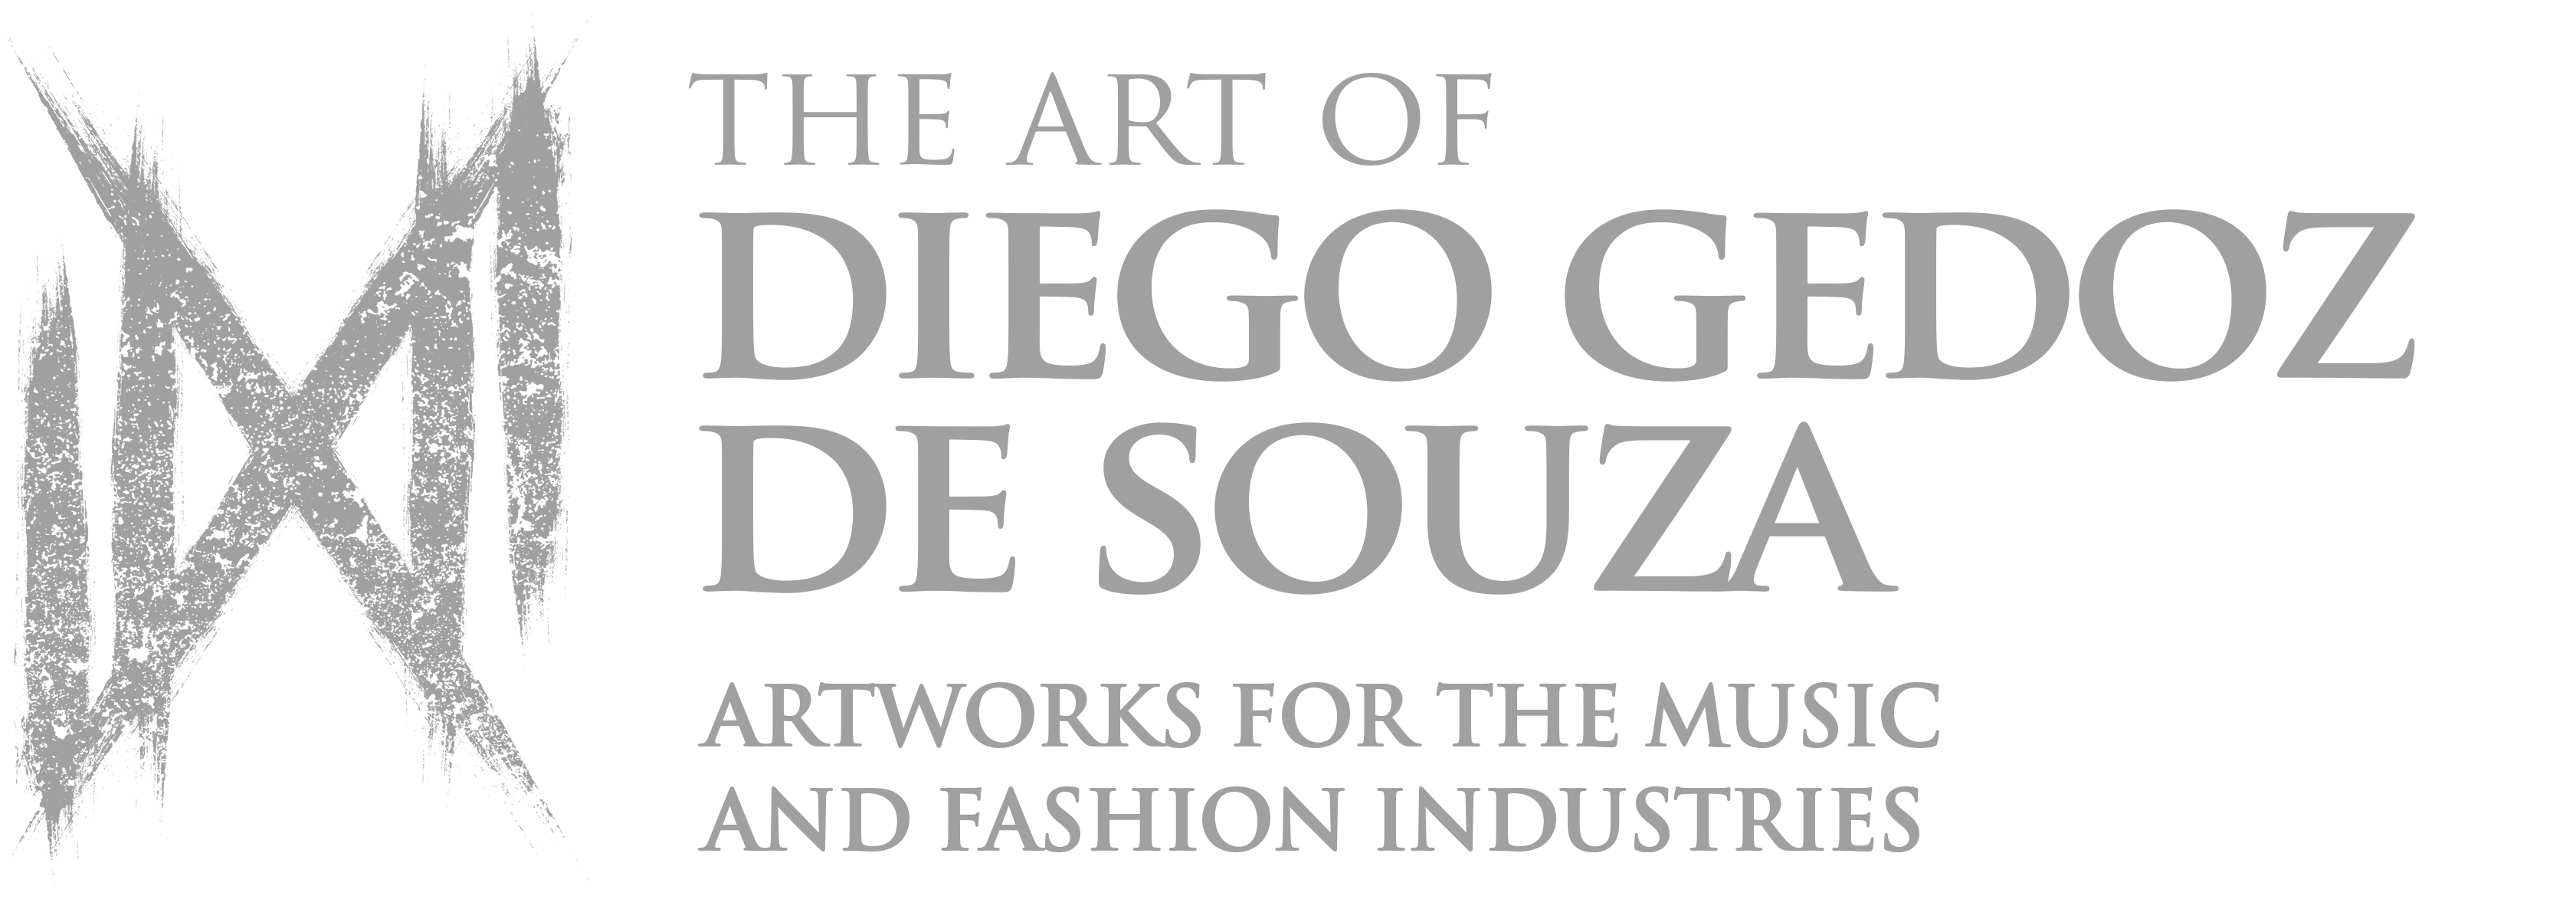 The Art of Diego Gedoz de Souza